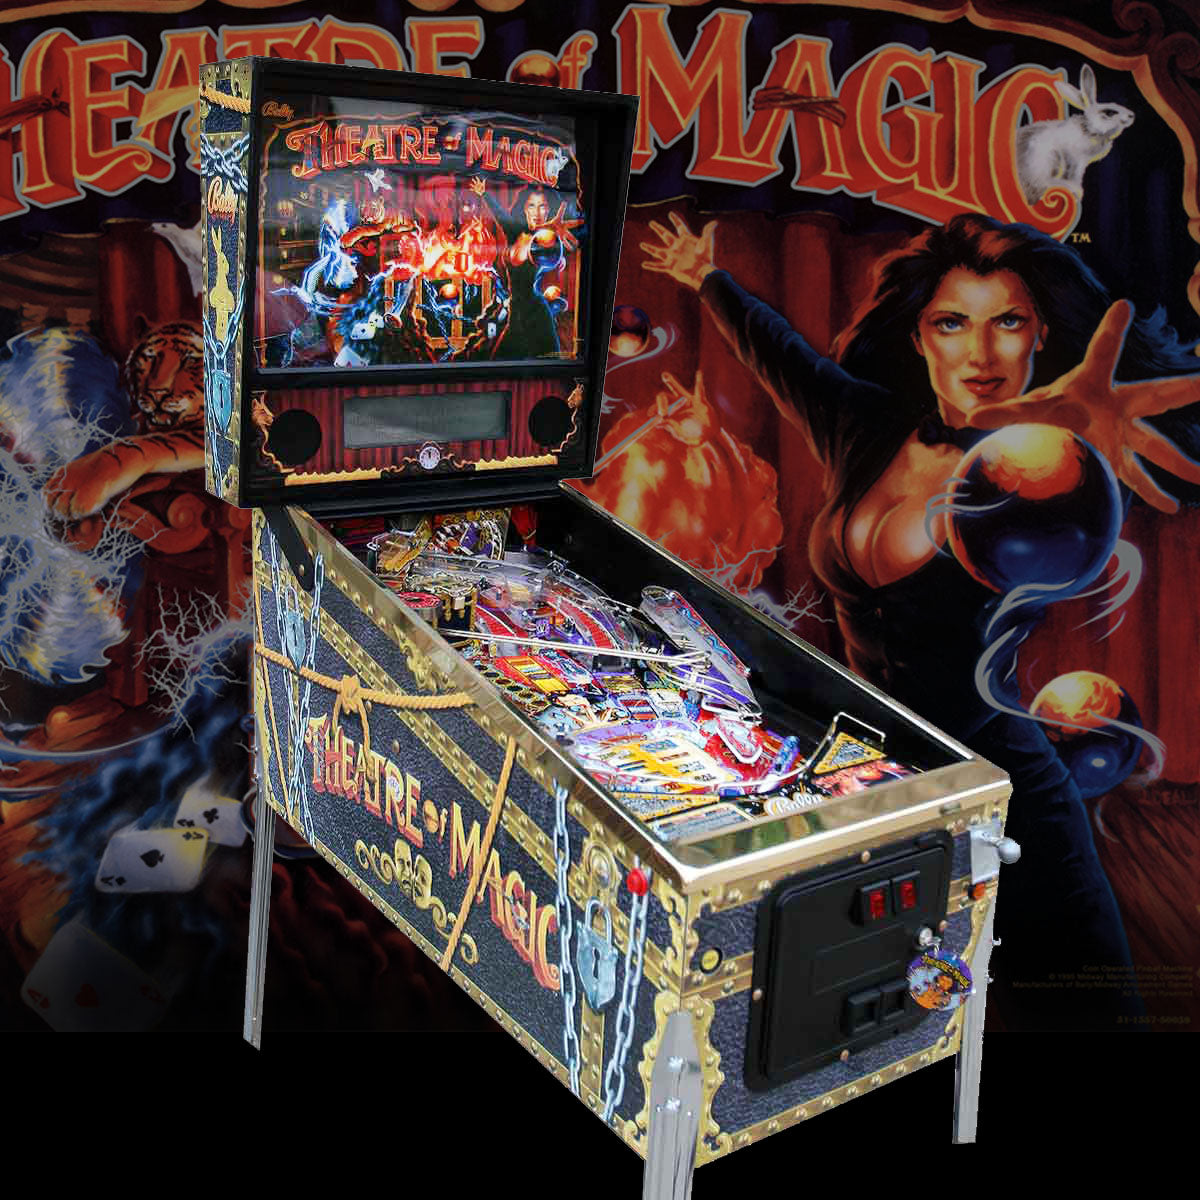 1995 Theatre of Magic Pinball by Bally